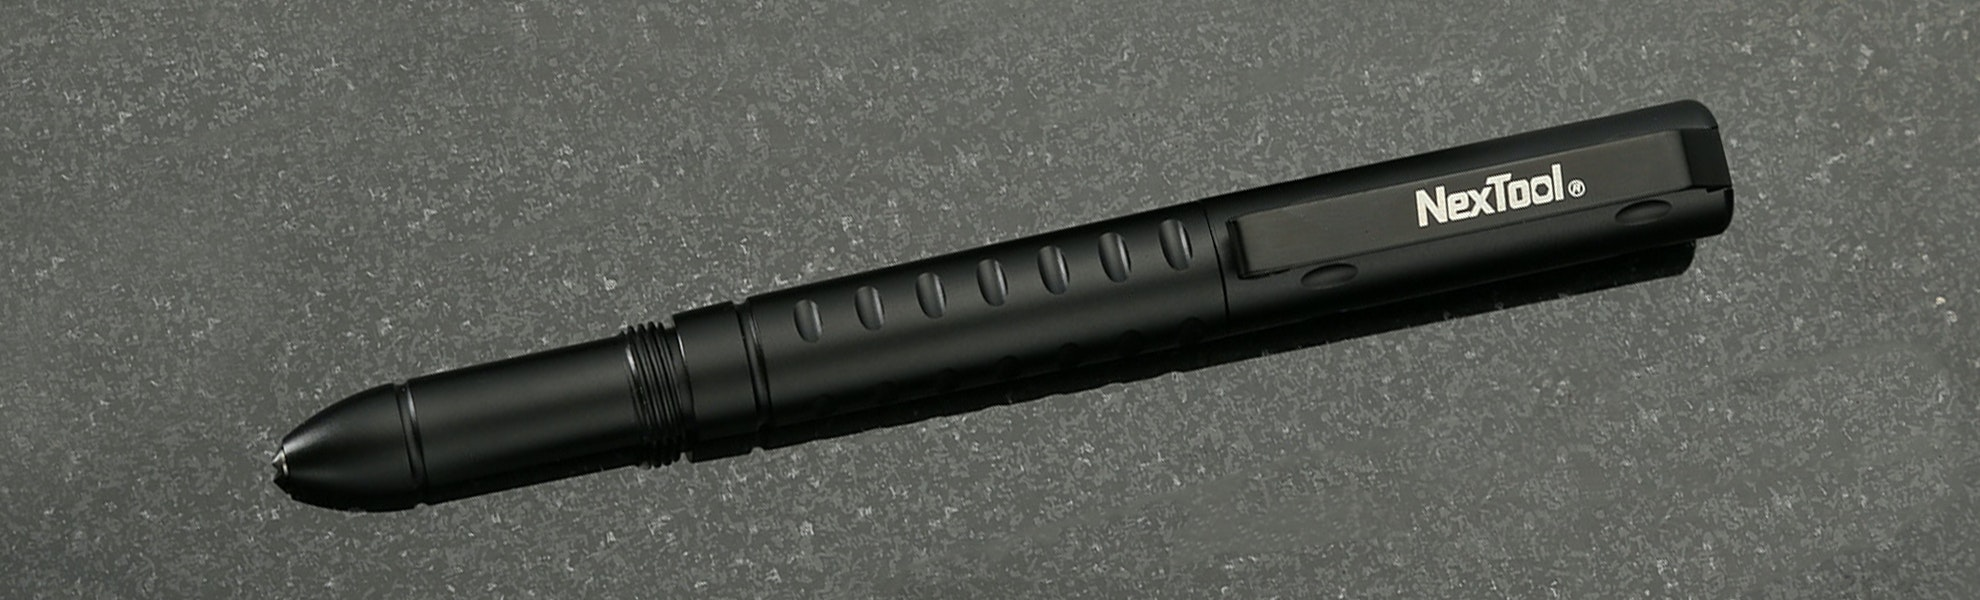 NexTool Tactical Pen w/Fisher Space Pen Cartridge